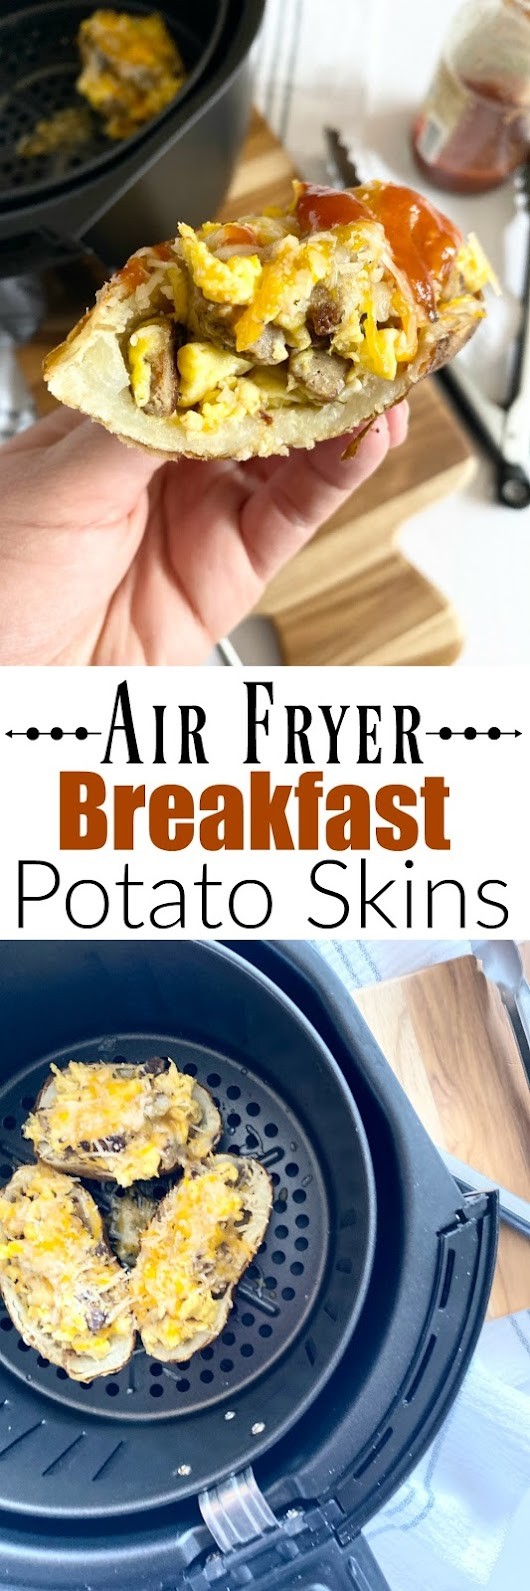 Air Fryer Breakfast Potato Skins...crispy potatoes, scrambled eggs, turkey sausage and cheese. The perfect weekend breakfast or meal prep for the week ahead. #ad #iowaegg